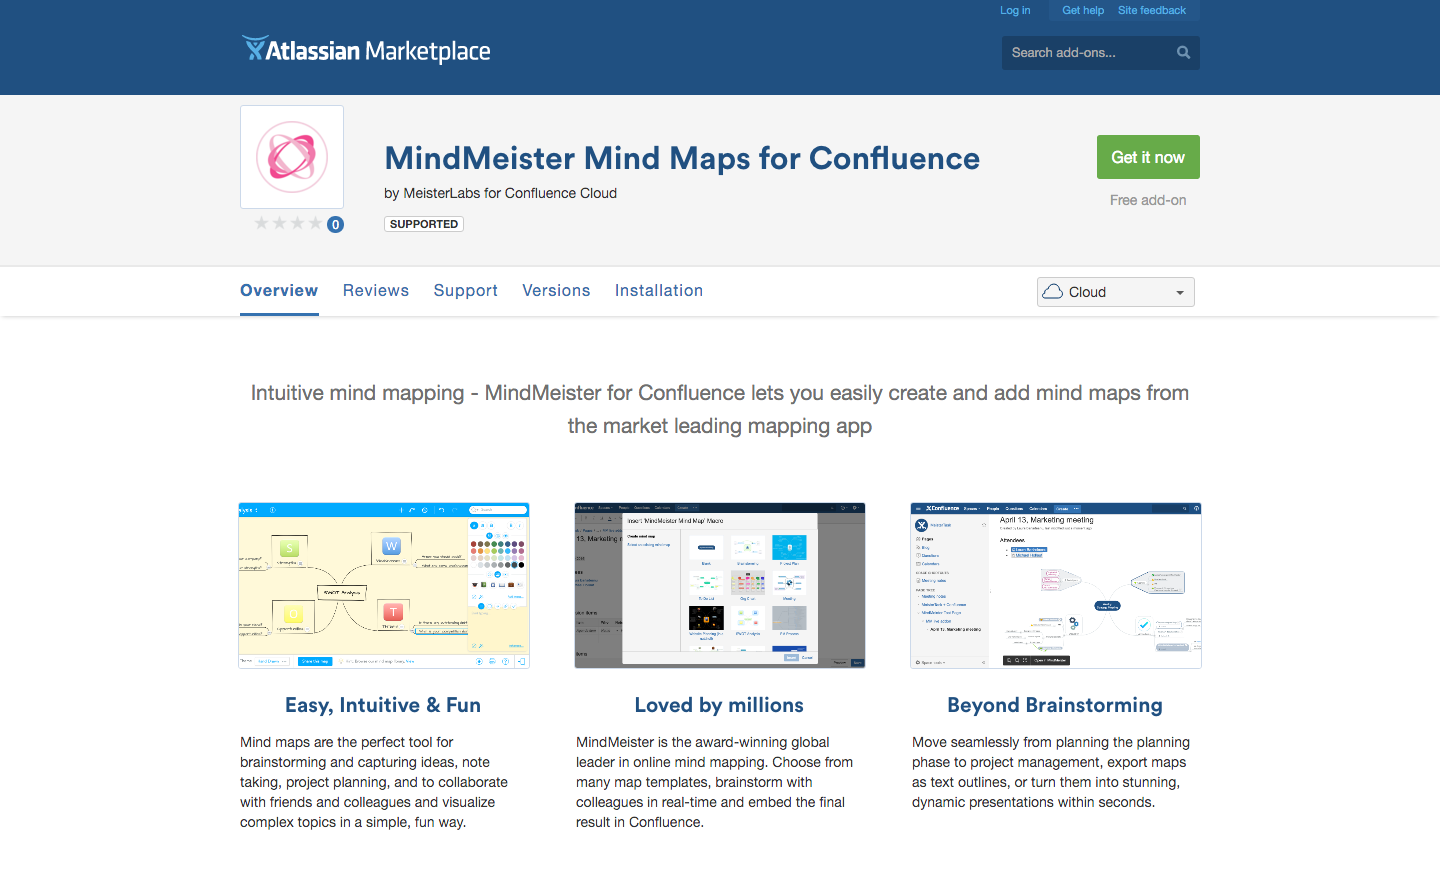 The MindMeister add-on, available in the Atlassian Marketplace